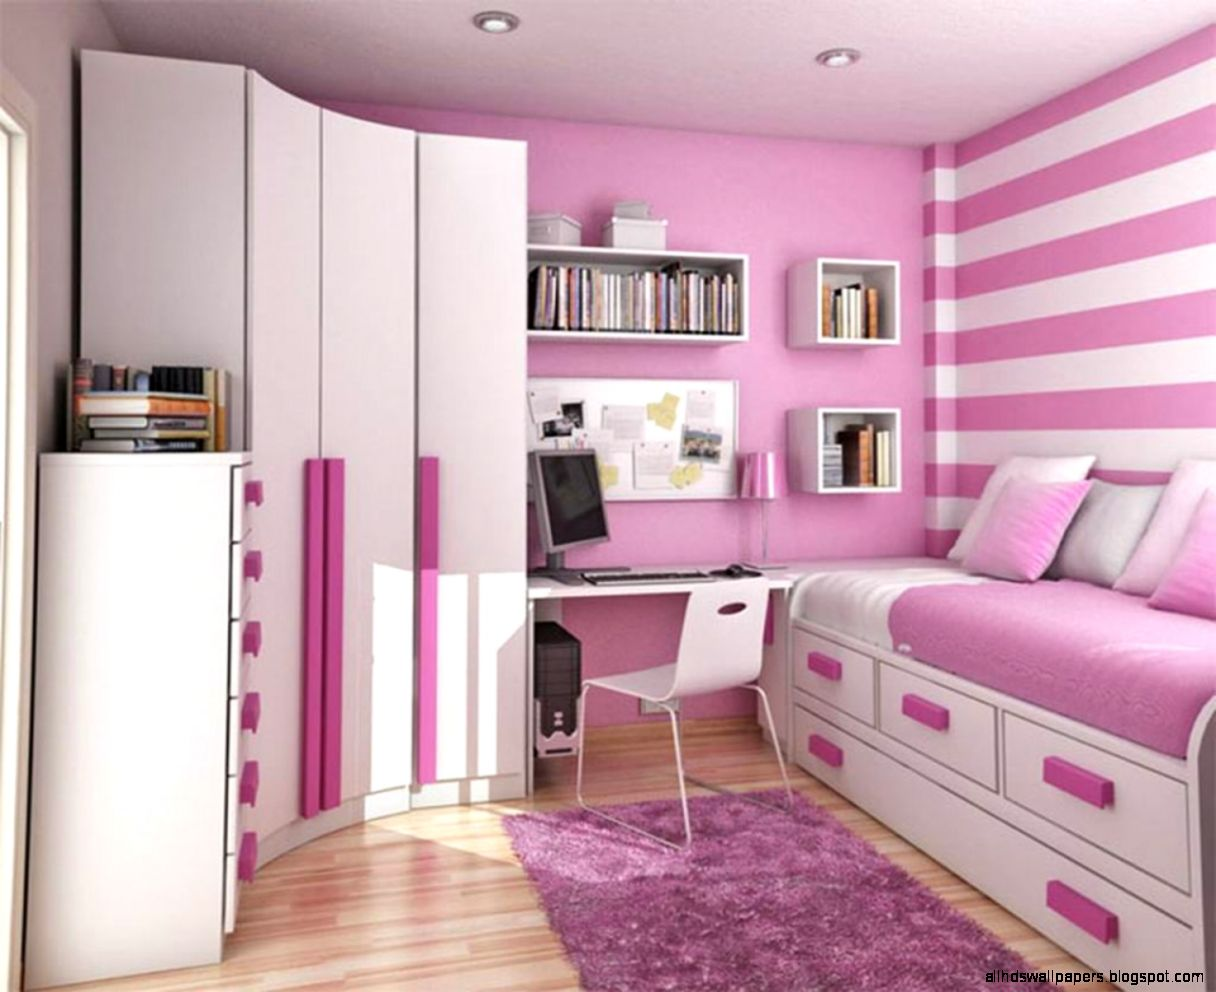 Entrancing Bedroom Pink Wallpaper Ideas For Teens Interior